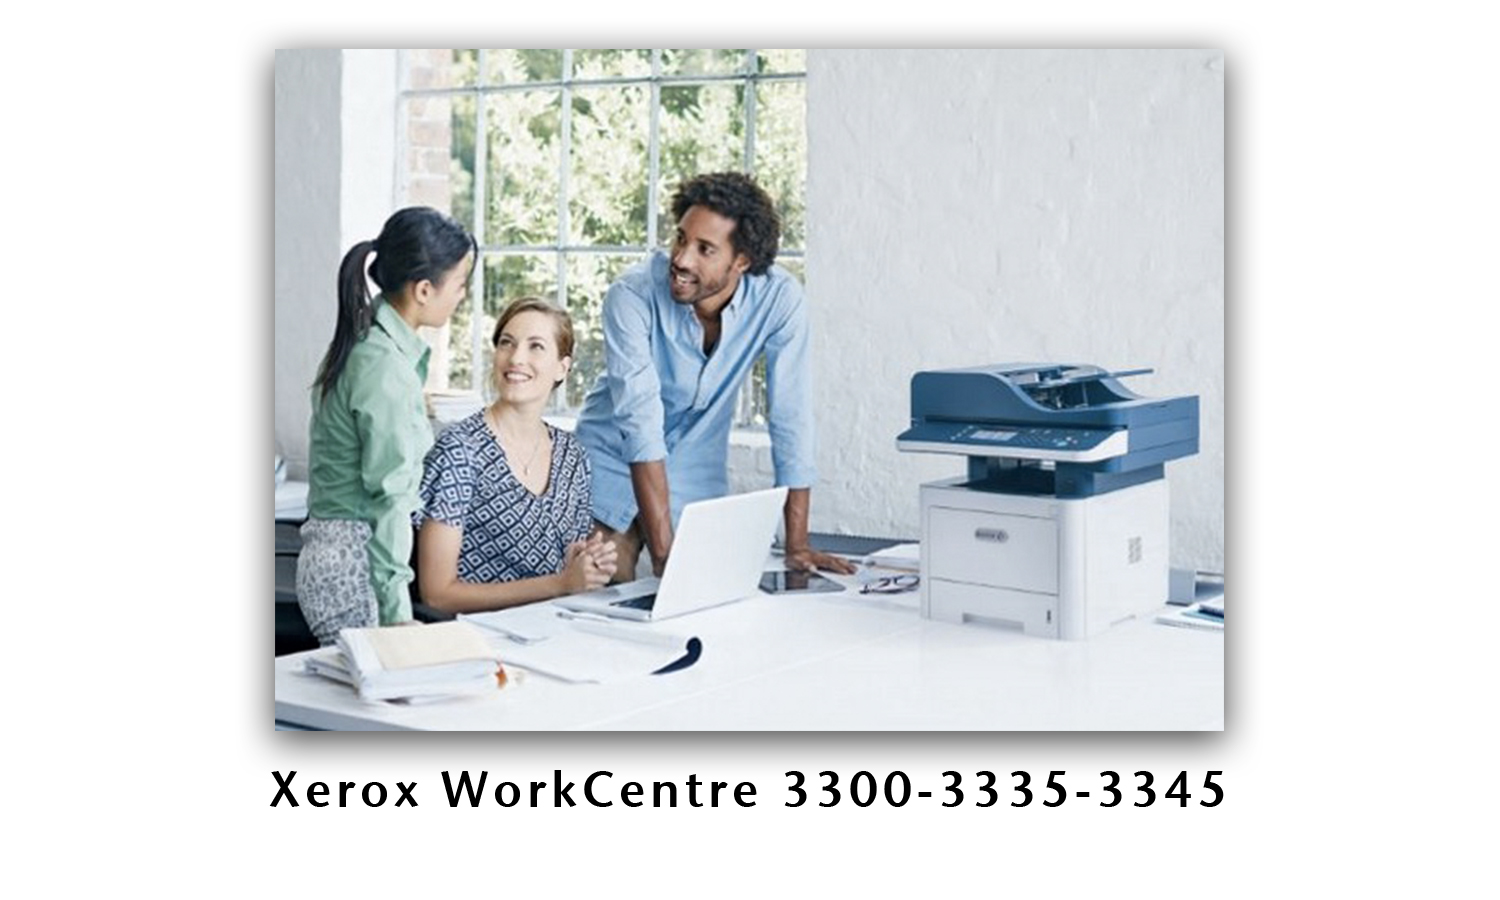 xerox-workcentre-3300-3335-3345-xerox-paris-docline-solutions